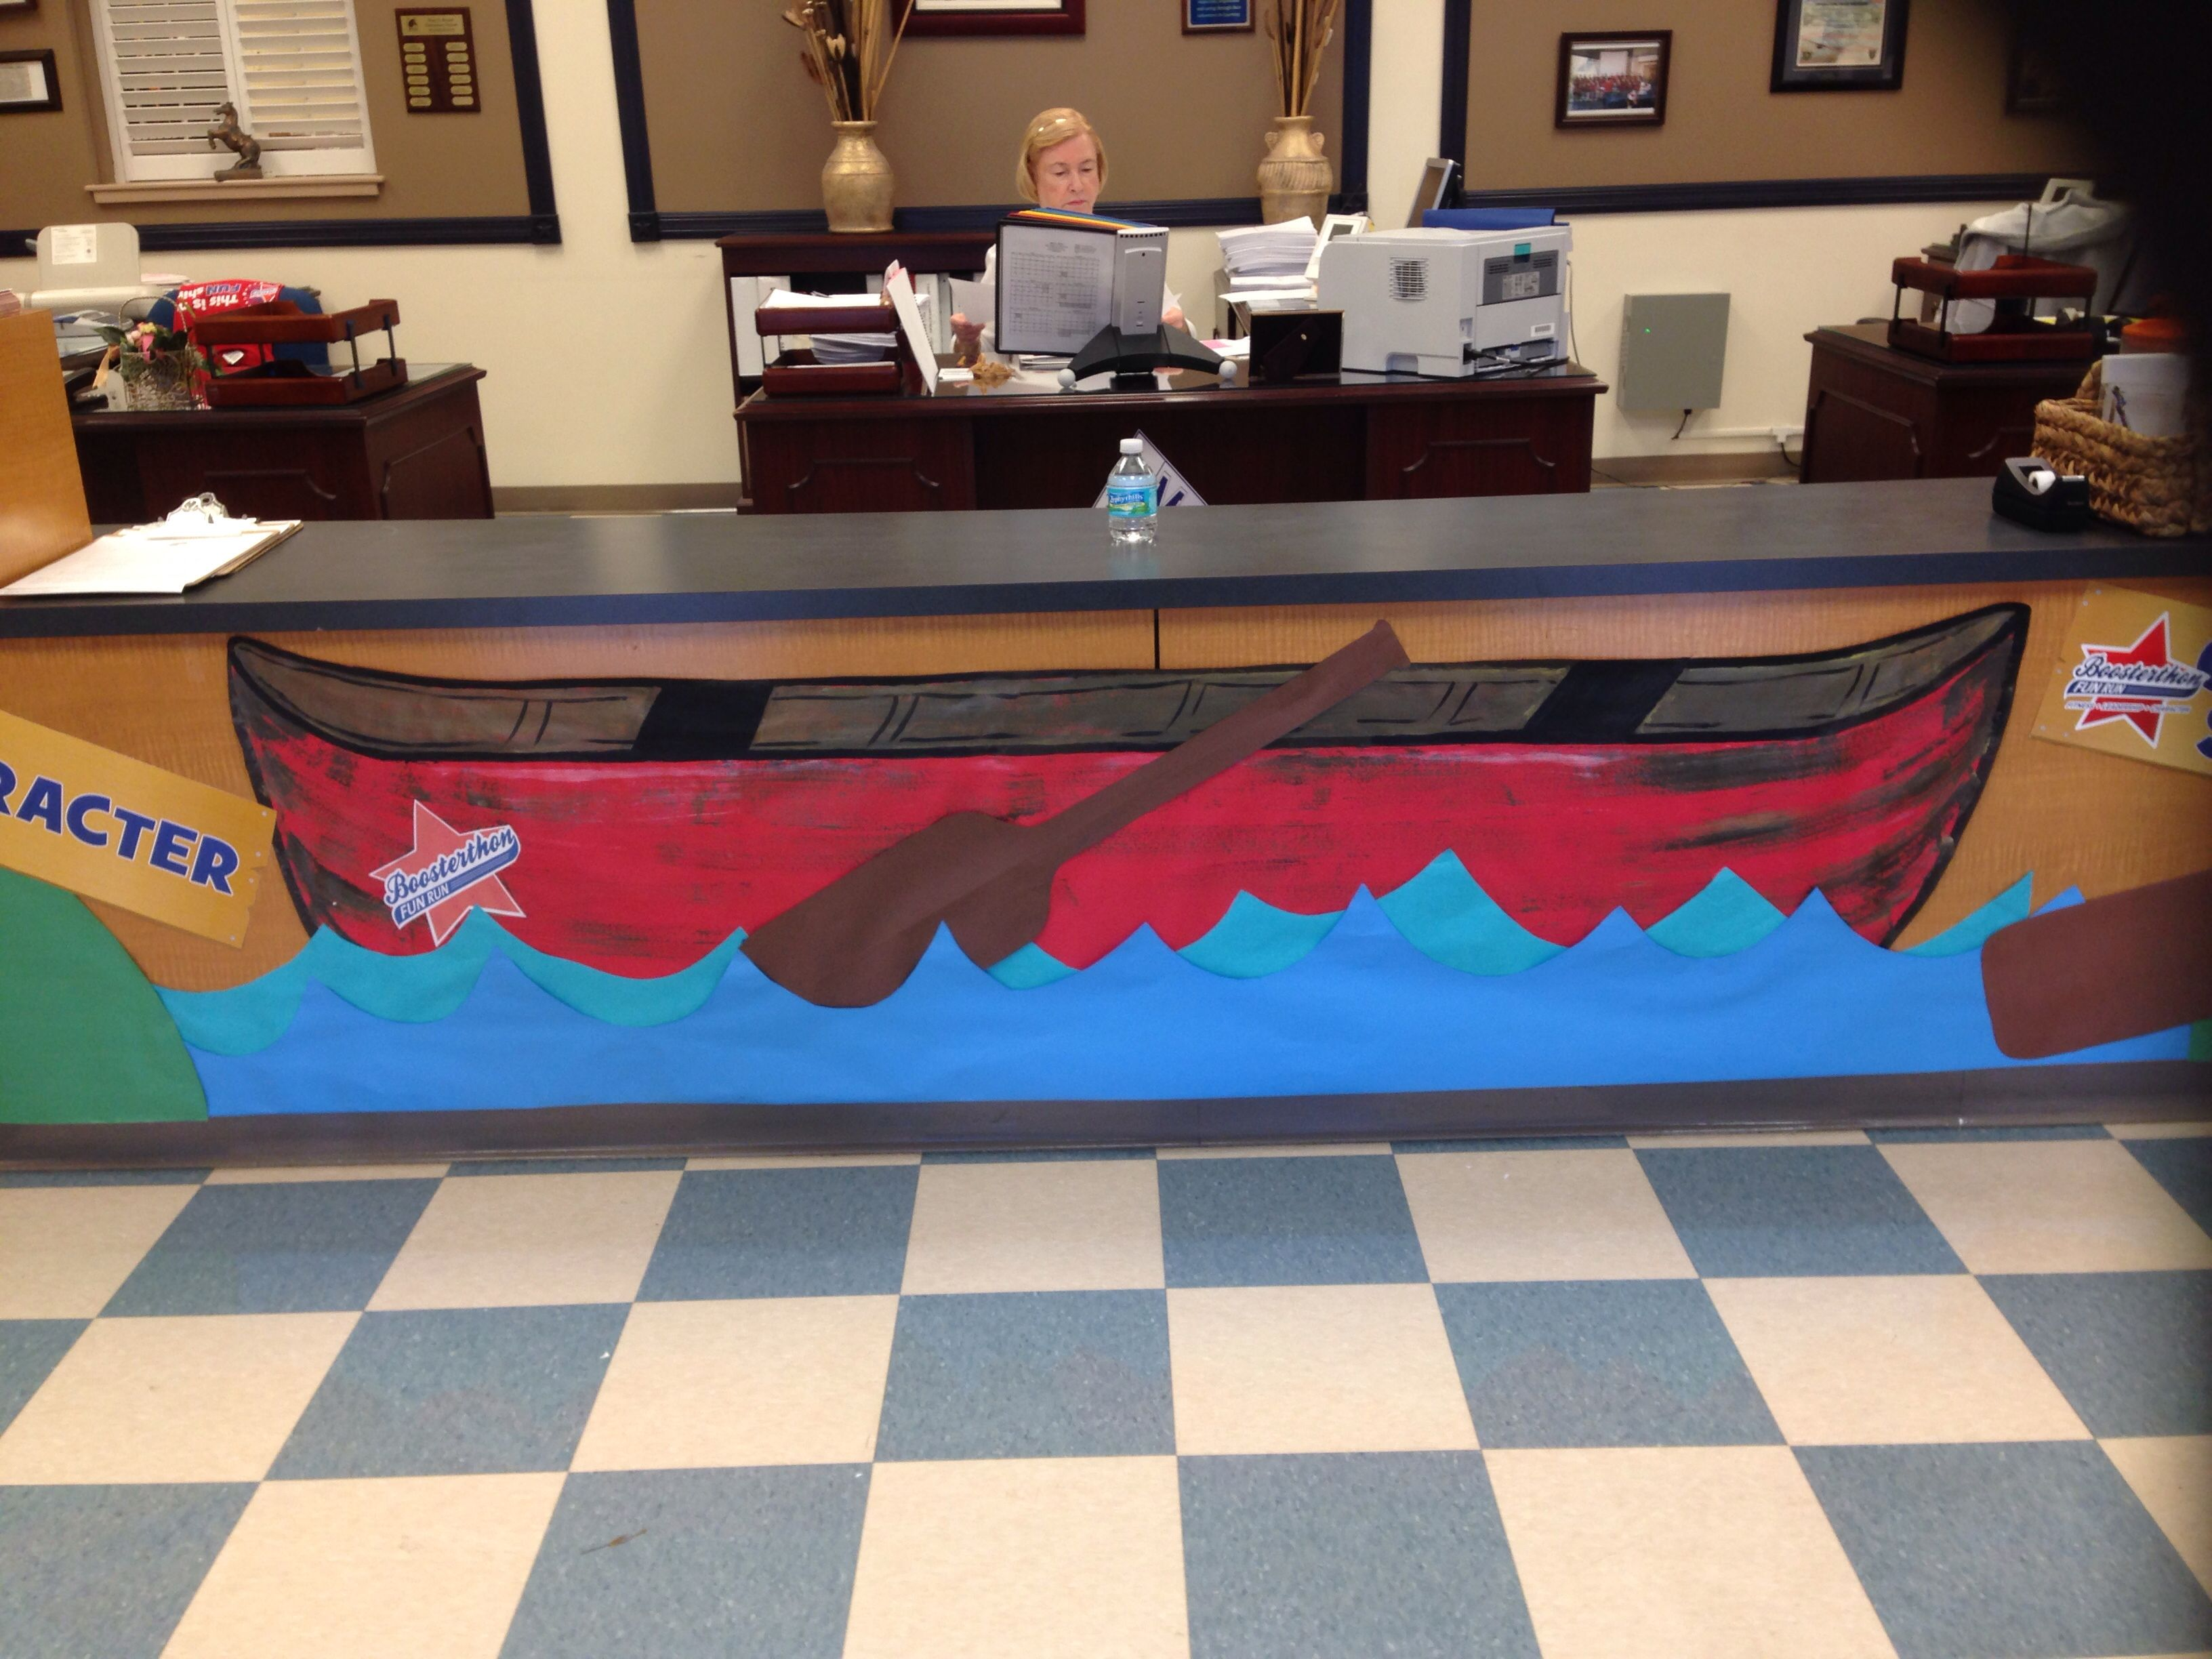 Boosterthon Camp High Five Bryant Elementary Tampa Fl 10 2017 Front Office Decor Canoe